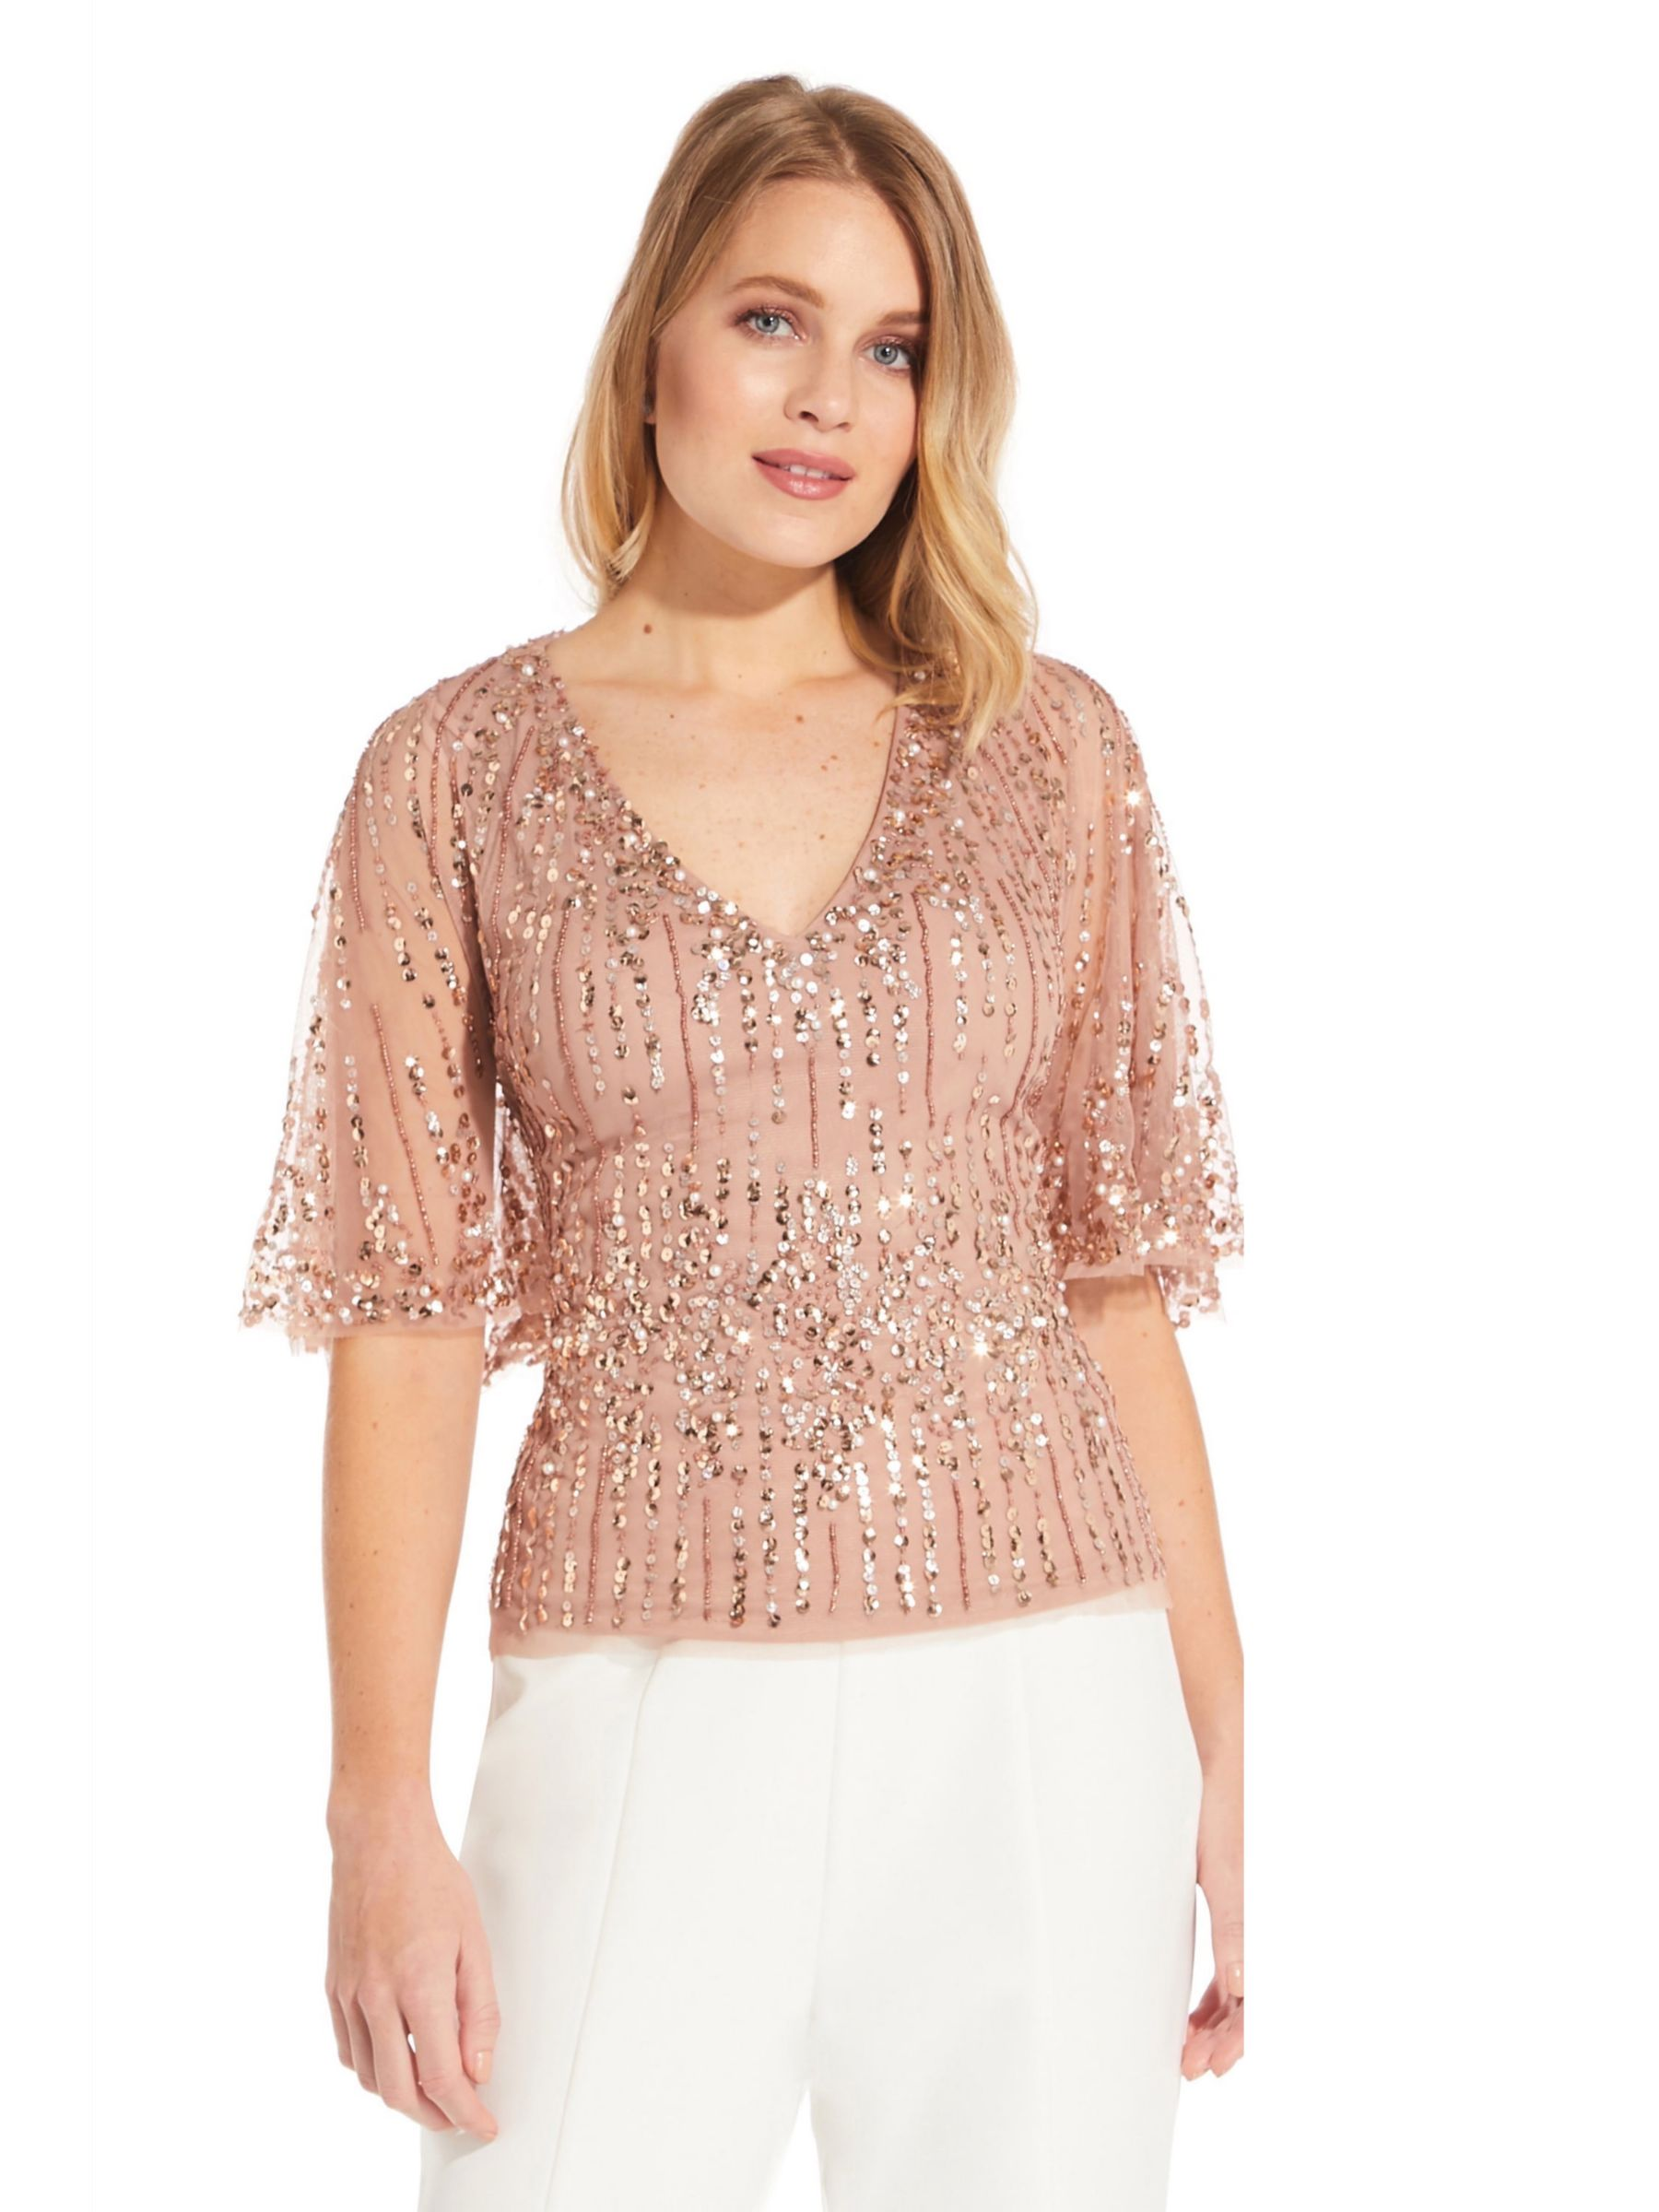 Adrianna Papell Adrianna Papell Beaded Half Cape Top, Rose Gold